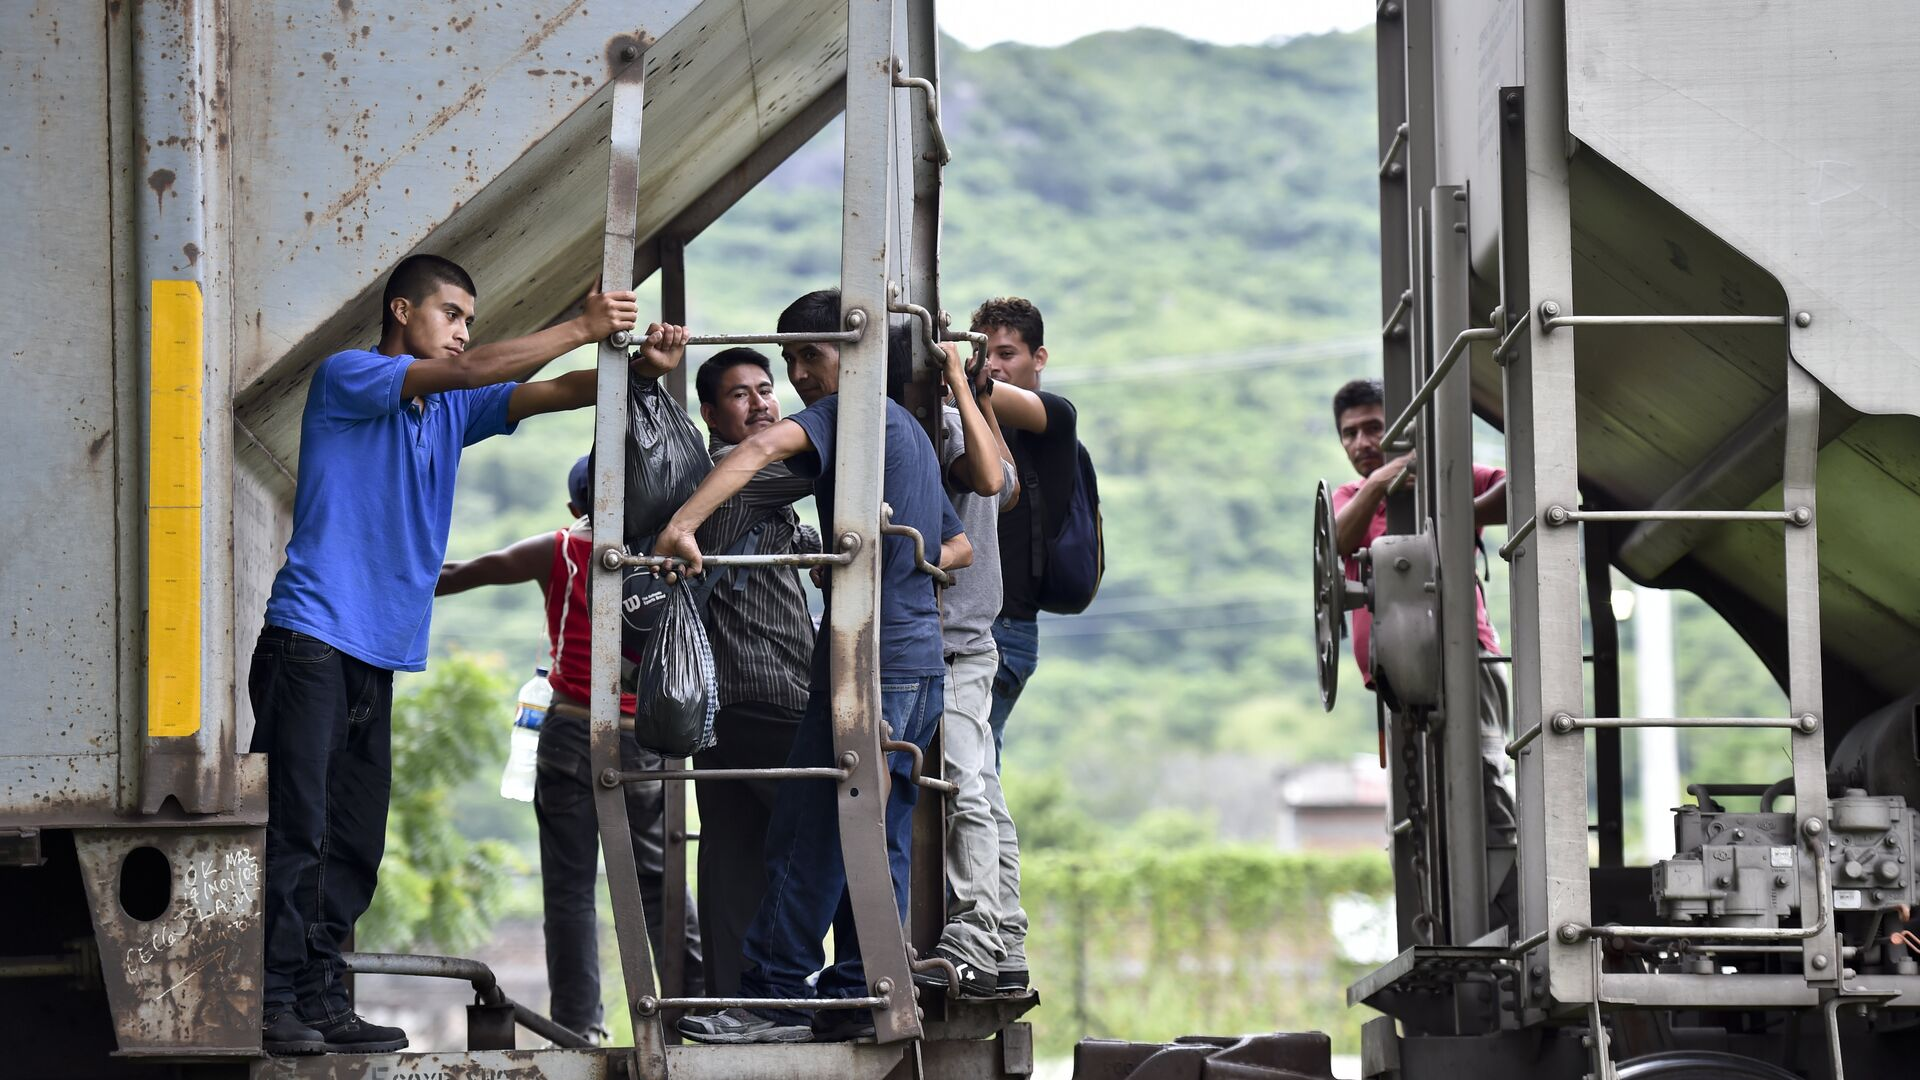 Central American migrants ride the train called The Beast in their attemp to reach the border between Mexico and the United States on September 1, 2014 in Arriaga, Chiapas state, Mexico. - Sputnik Mundo, 1920, 07.06.2021